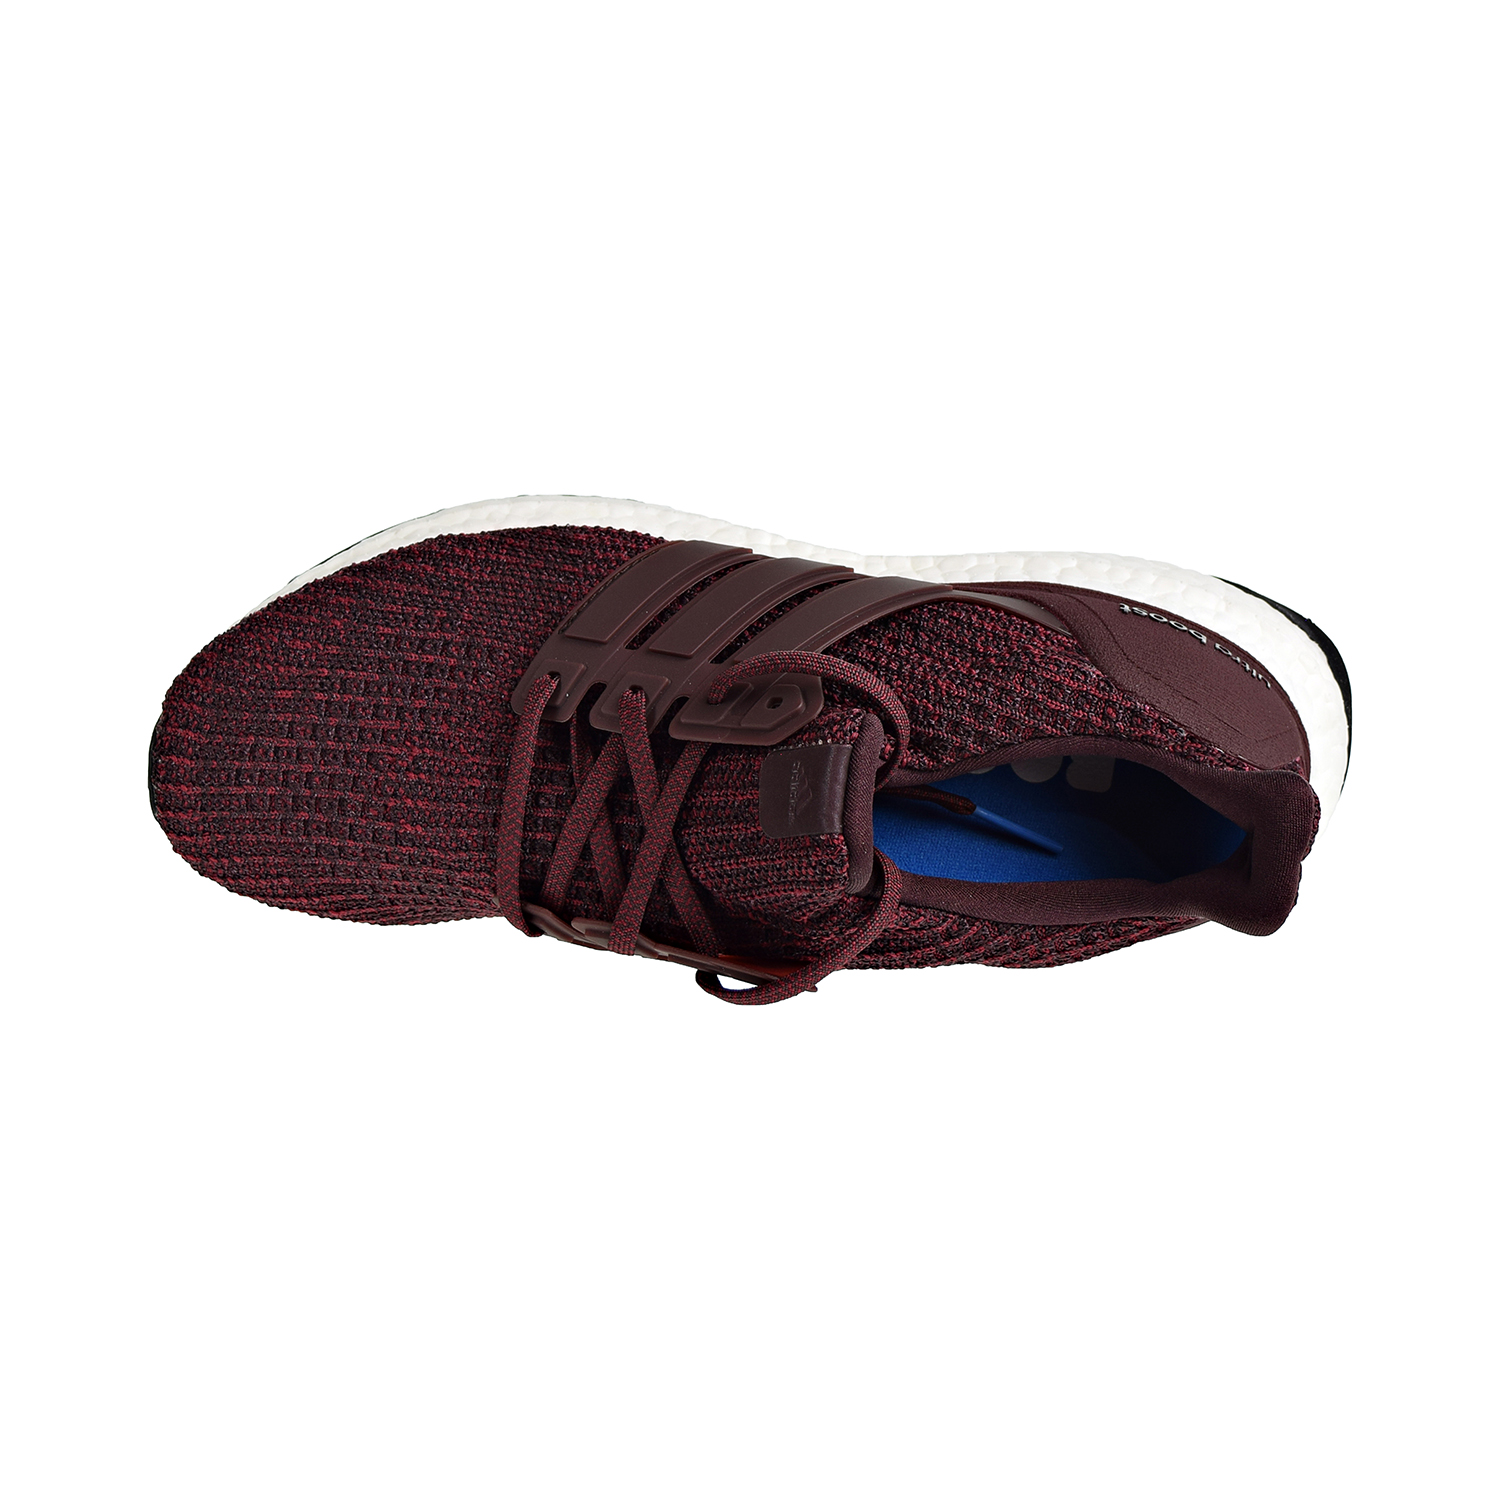 7375041a268 Adidas Ultraboost Men s Running Shoes Night Red Night Red Noble Maroon  cm8115